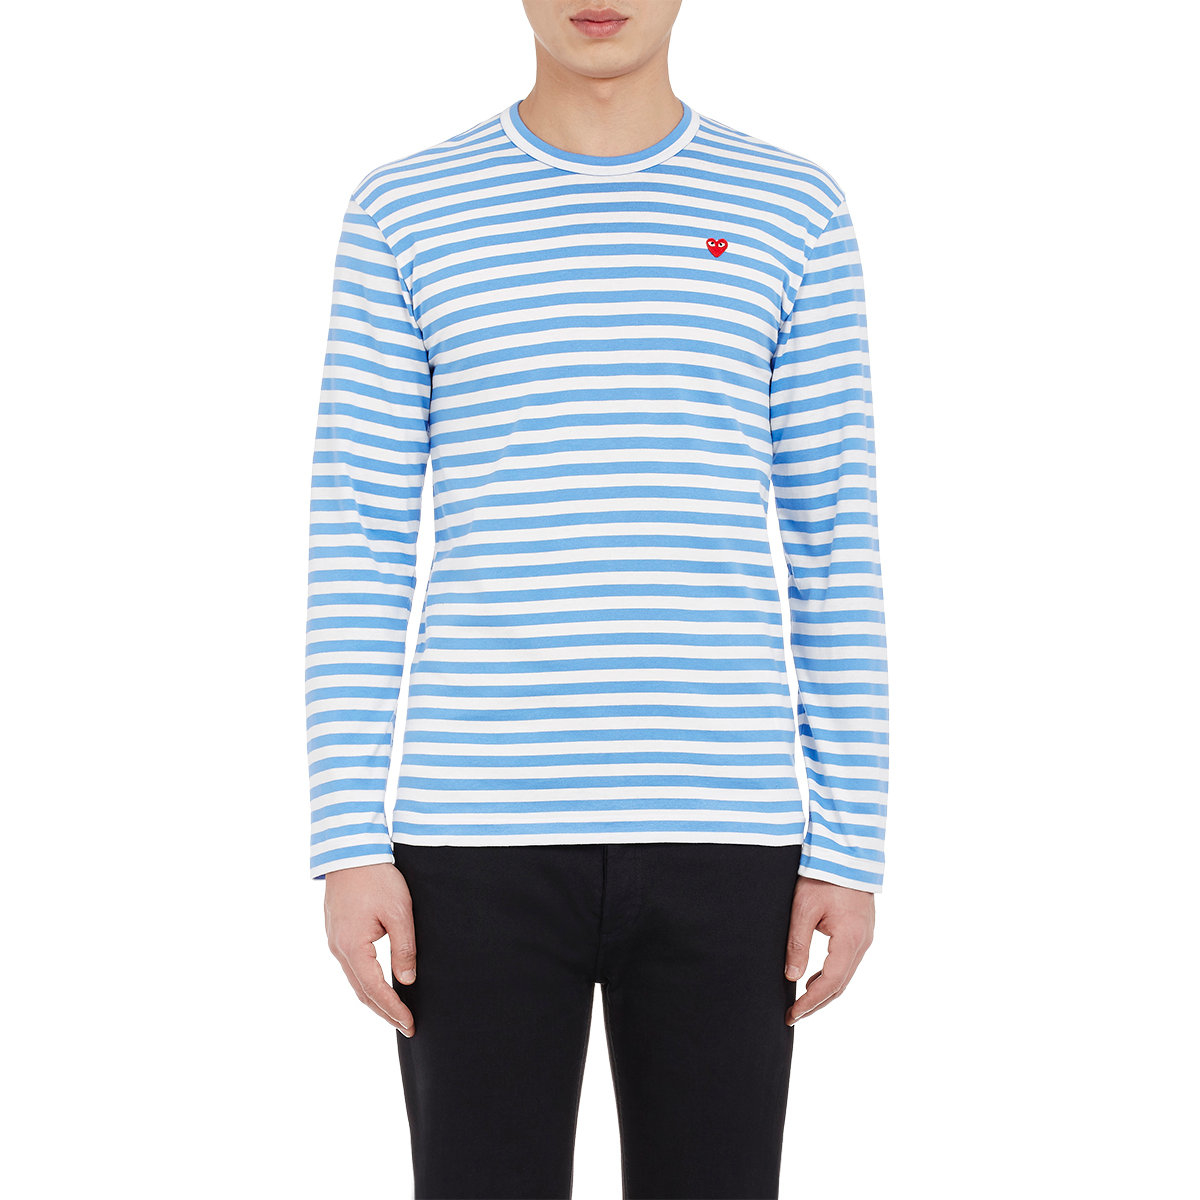 play comme des gar ons striped long sleeve t shirt in blue. Black Bedroom Furniture Sets. Home Design Ideas